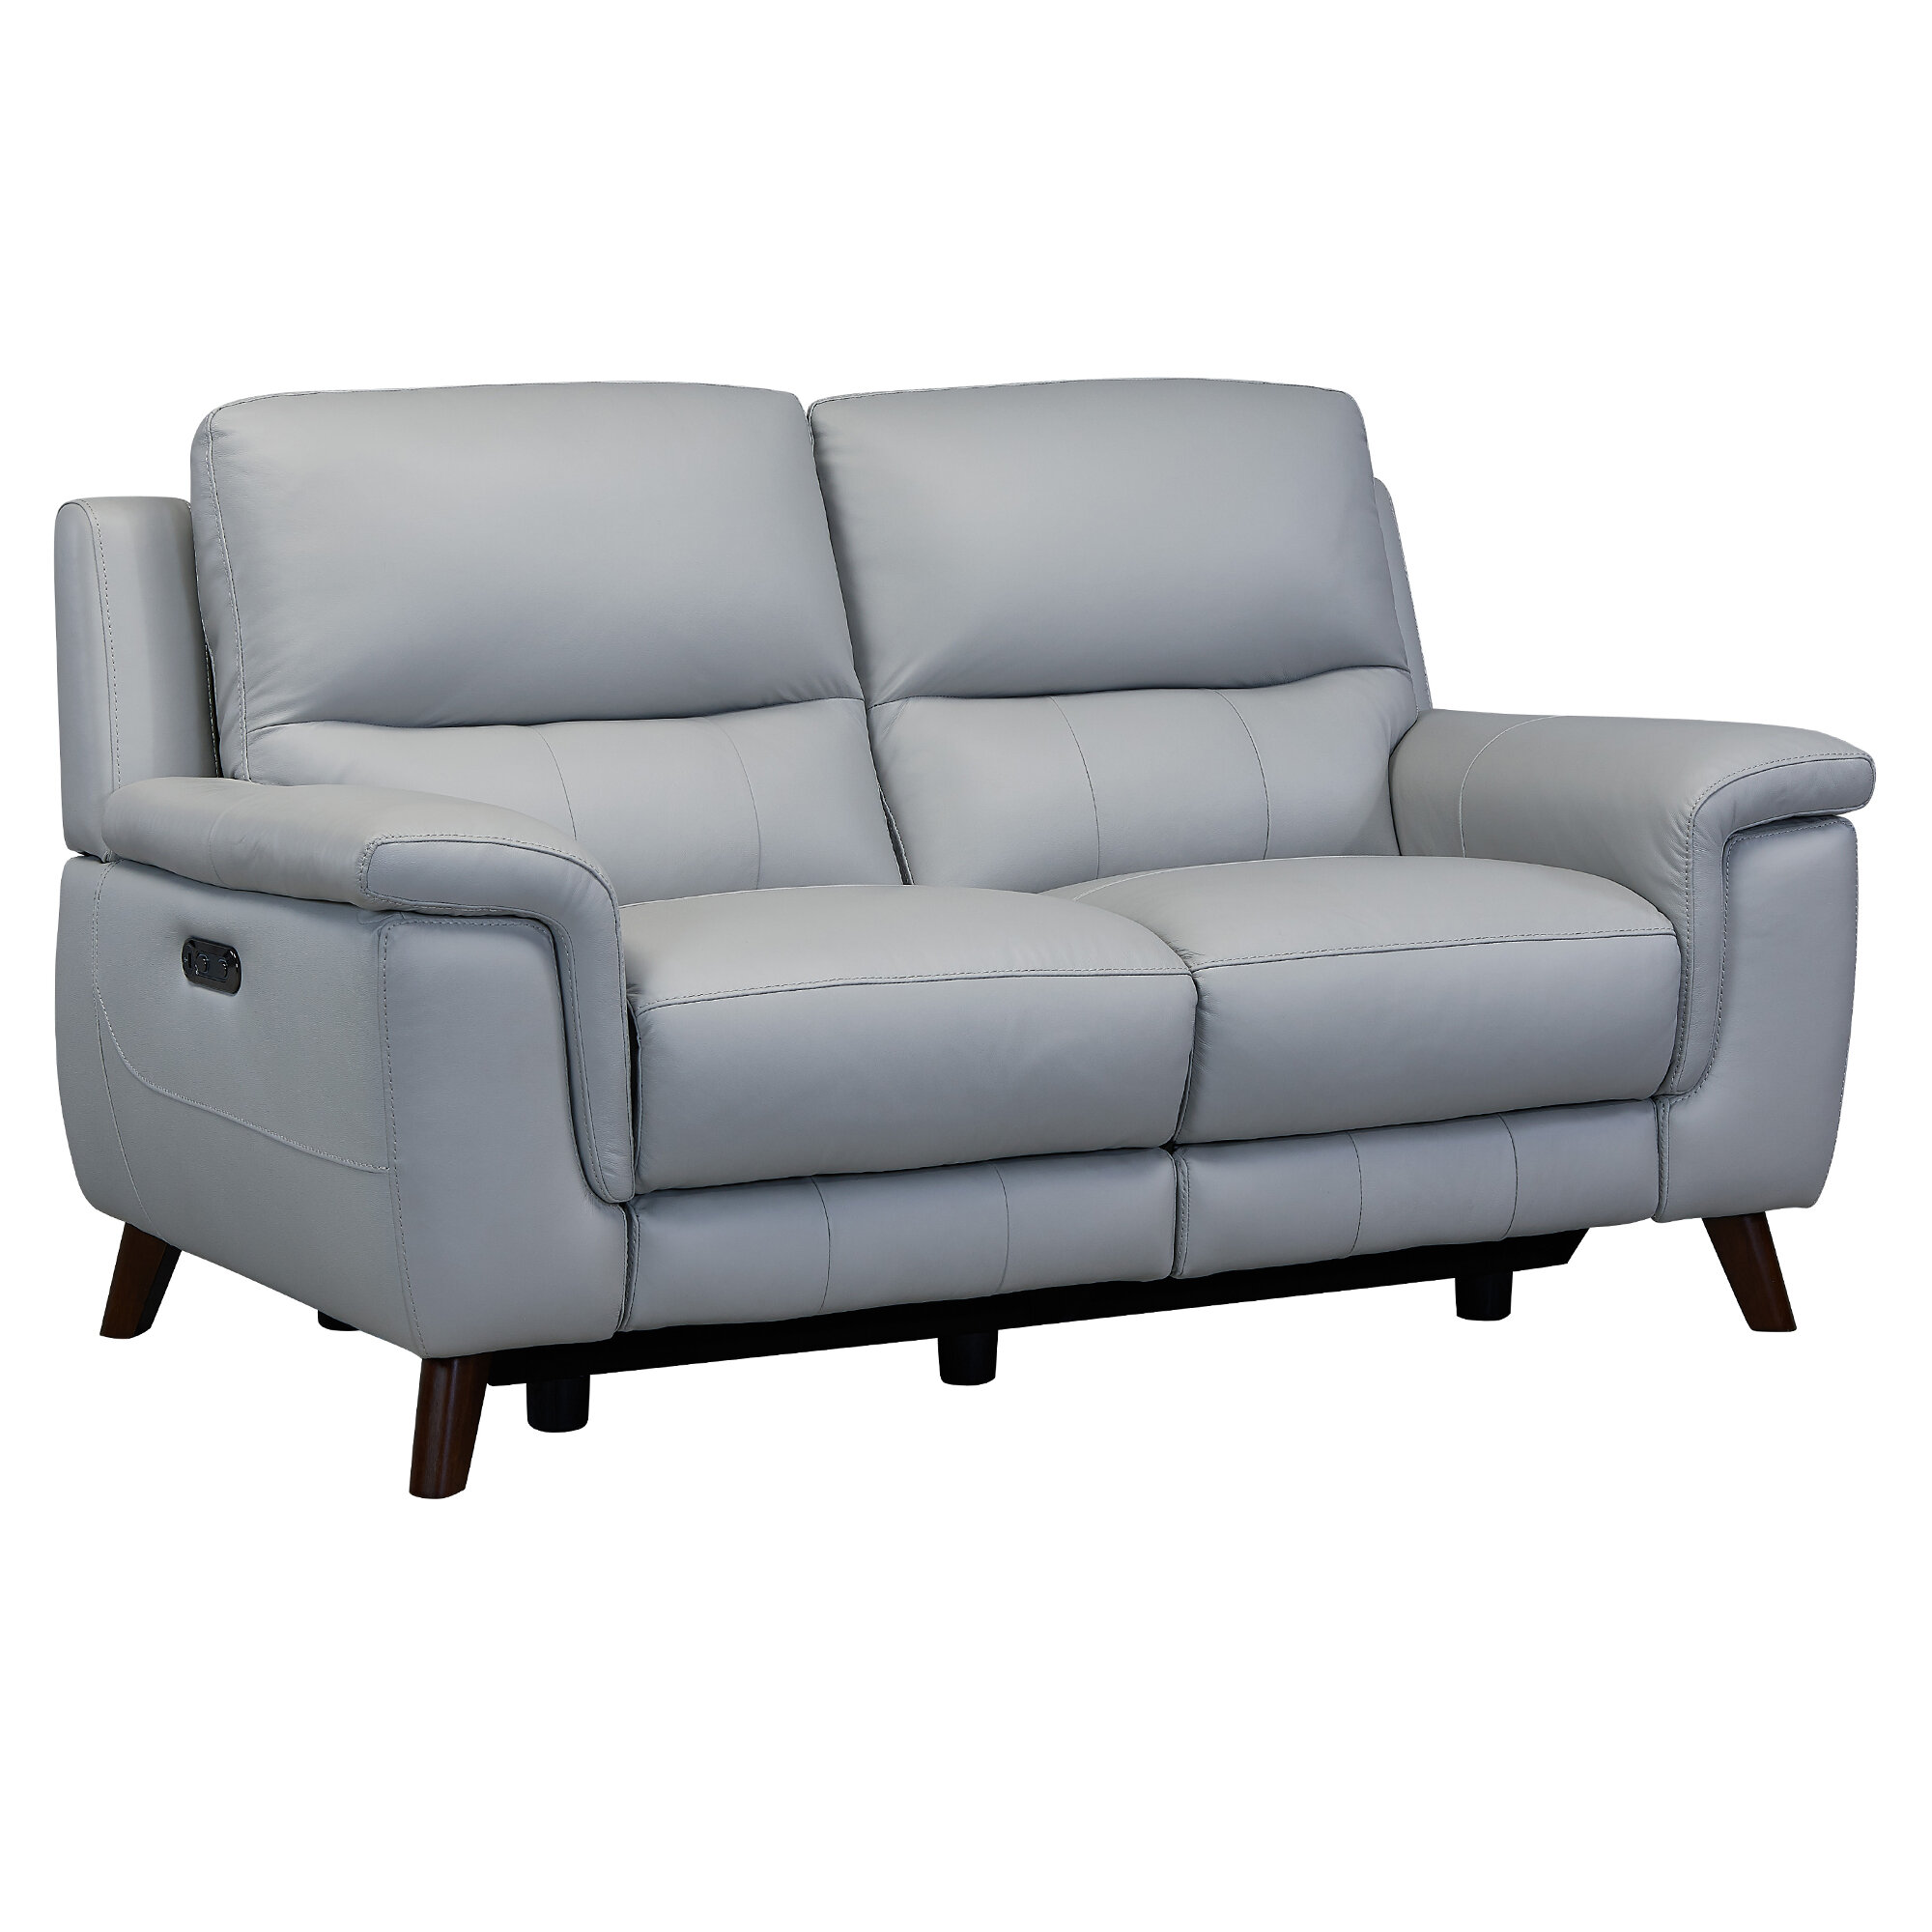 Astounding Yosef Leather Reclining Loveseat Squirreltailoven Fun Painted Chair Ideas Images Squirreltailovenorg